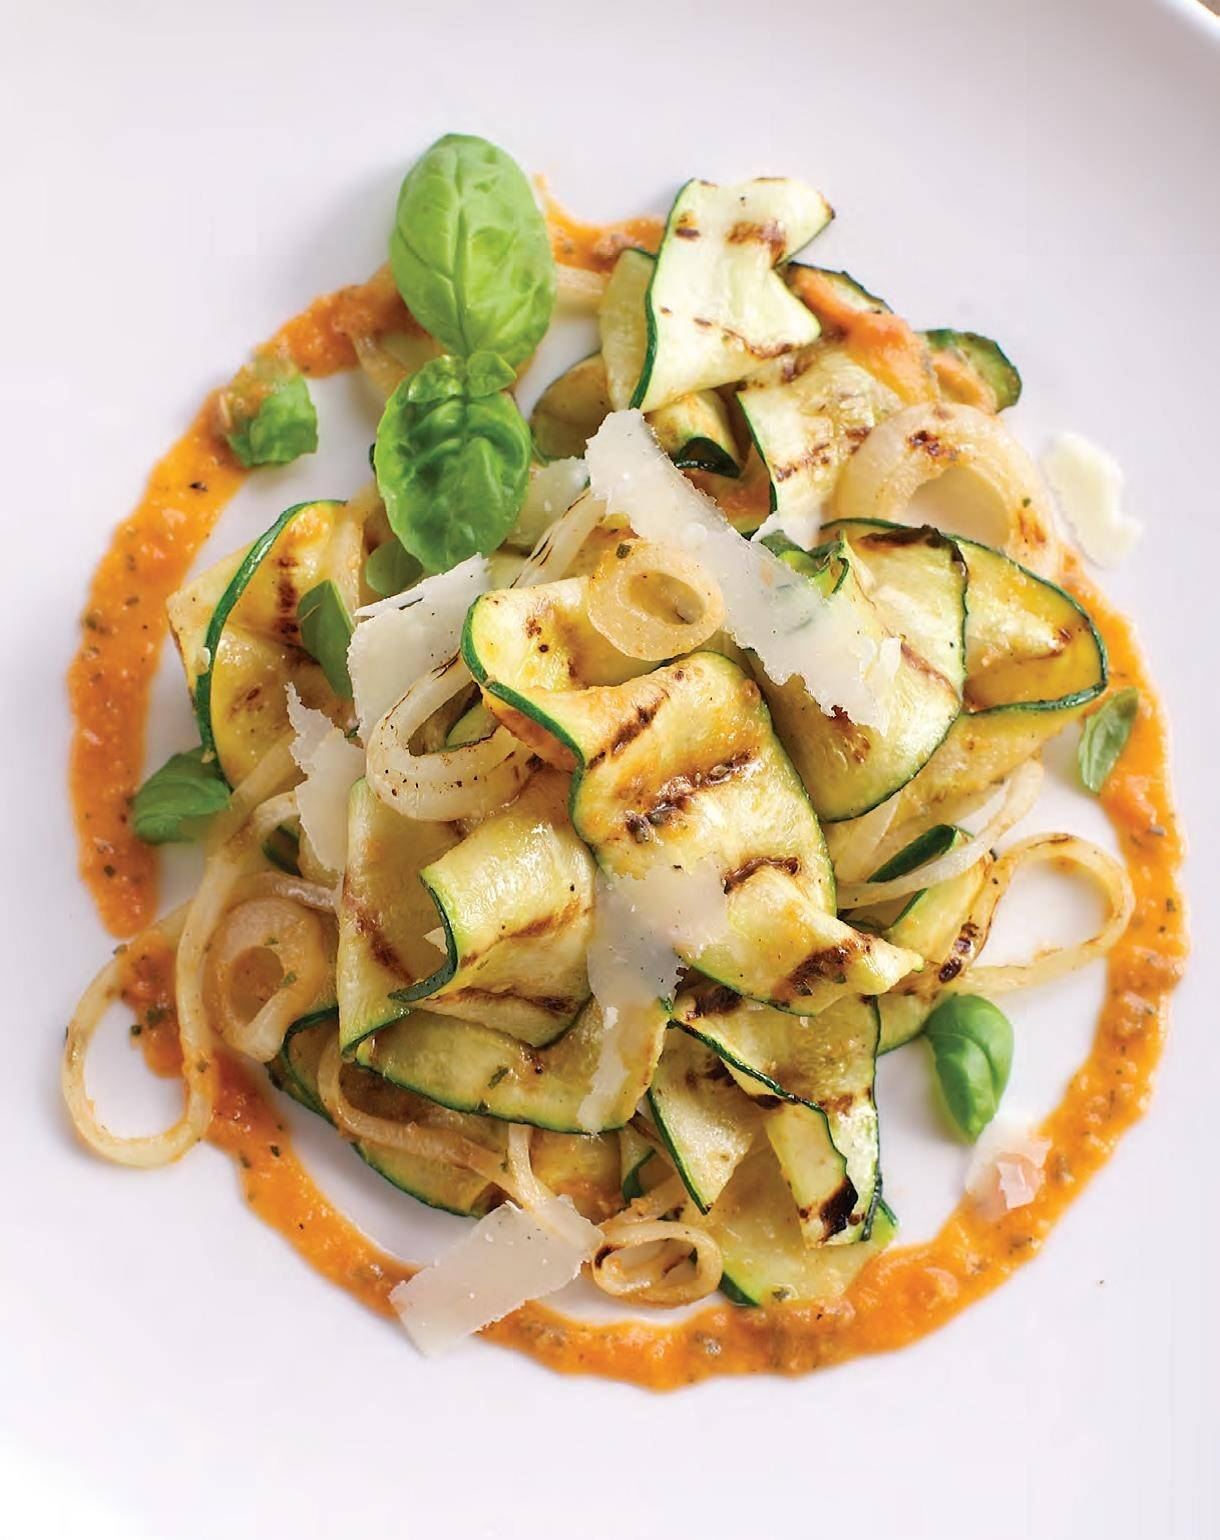 Grilled tomatoes add depth to a vinaigrette that dressed a zucchini and onion salad.